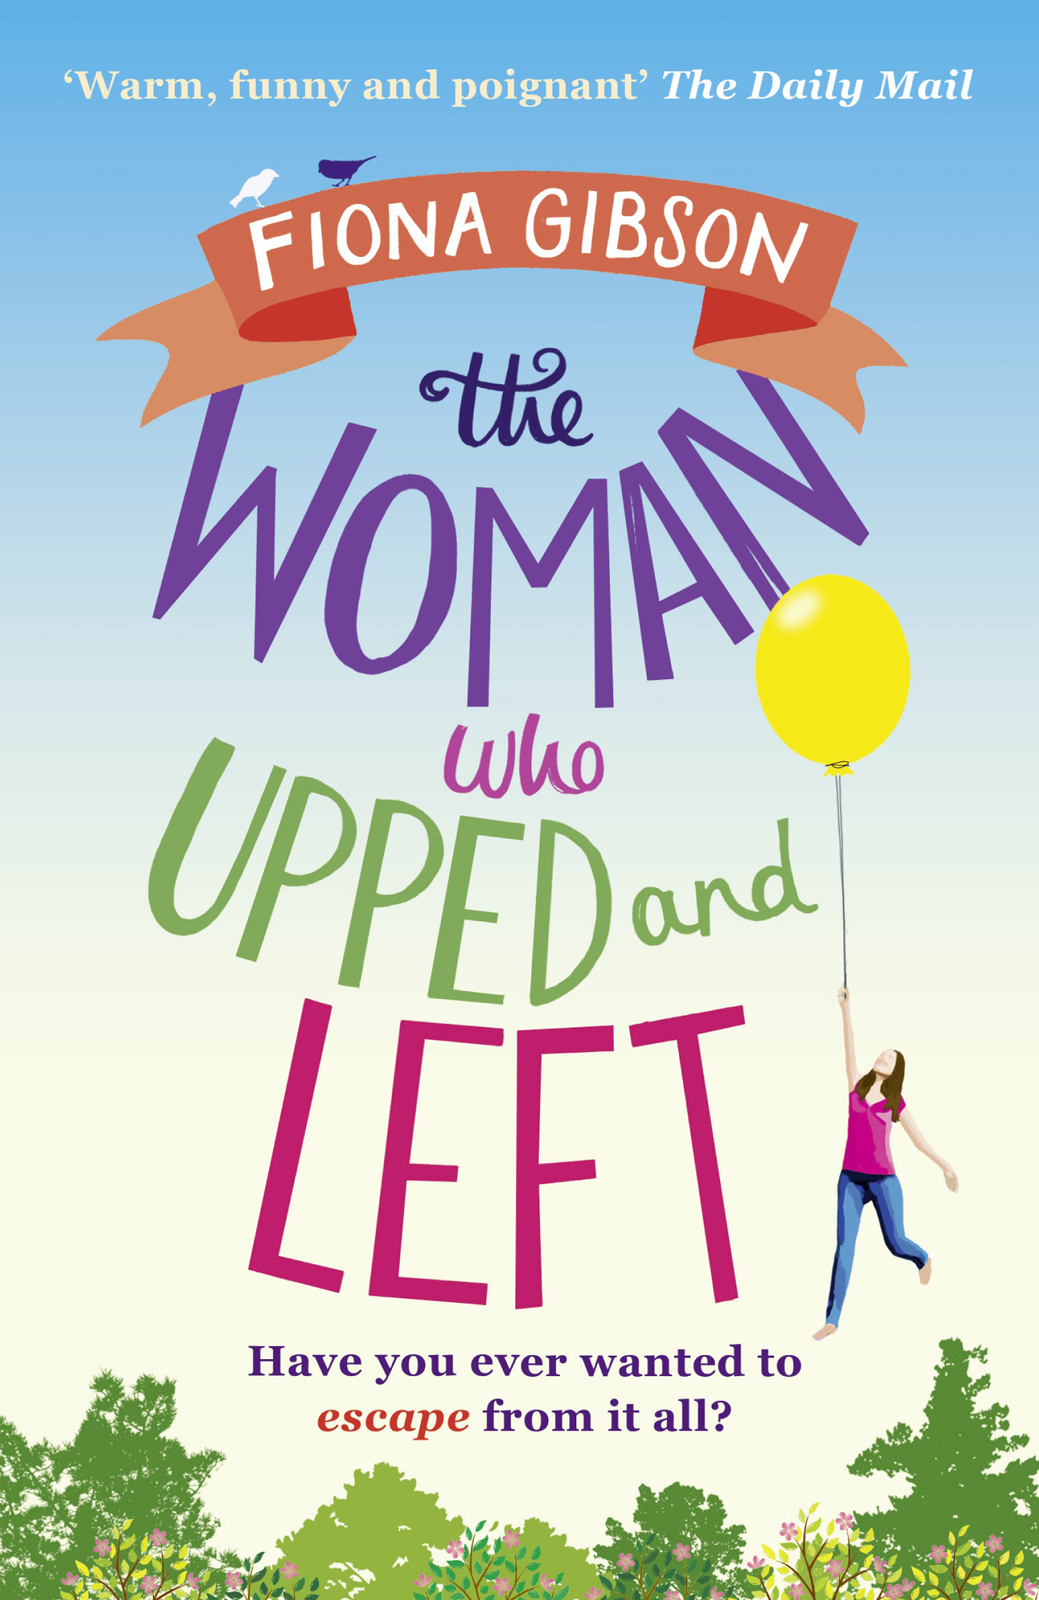 Fiona Gibson The Woman Who Upped and Left: A laugh-out-loud read that will put a spring in your step!